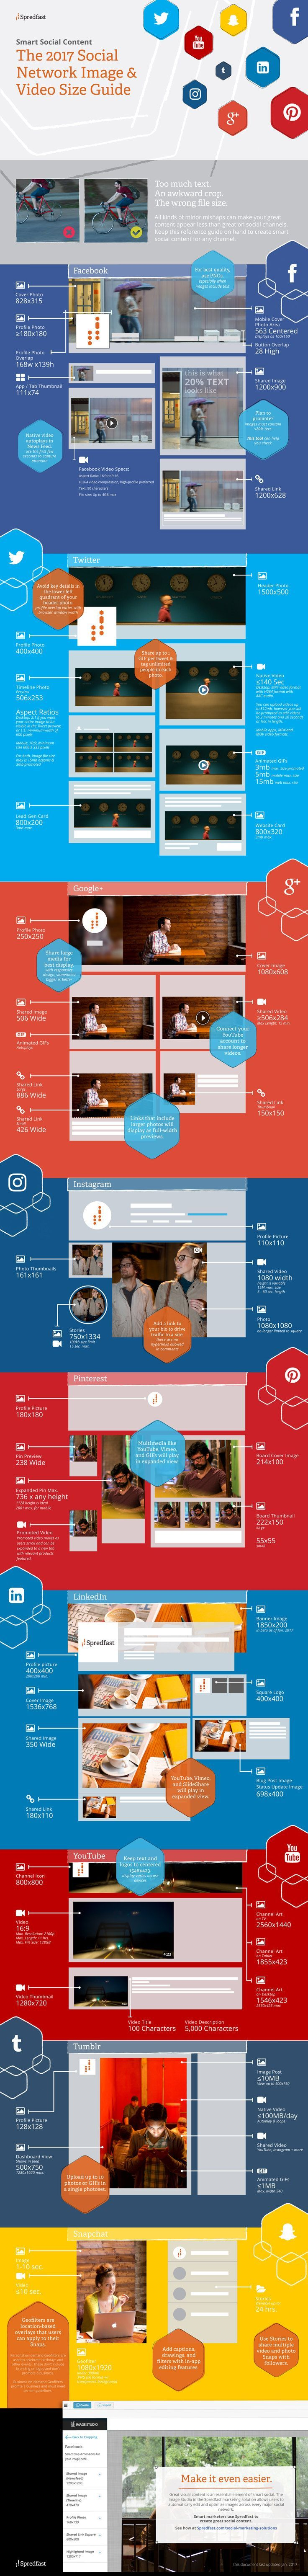 This infographic compiles image and video specs for 9 major social media platforms. It's the ultimate guide for 2017. Never again scramble to figure out how big that Facebook image should be.